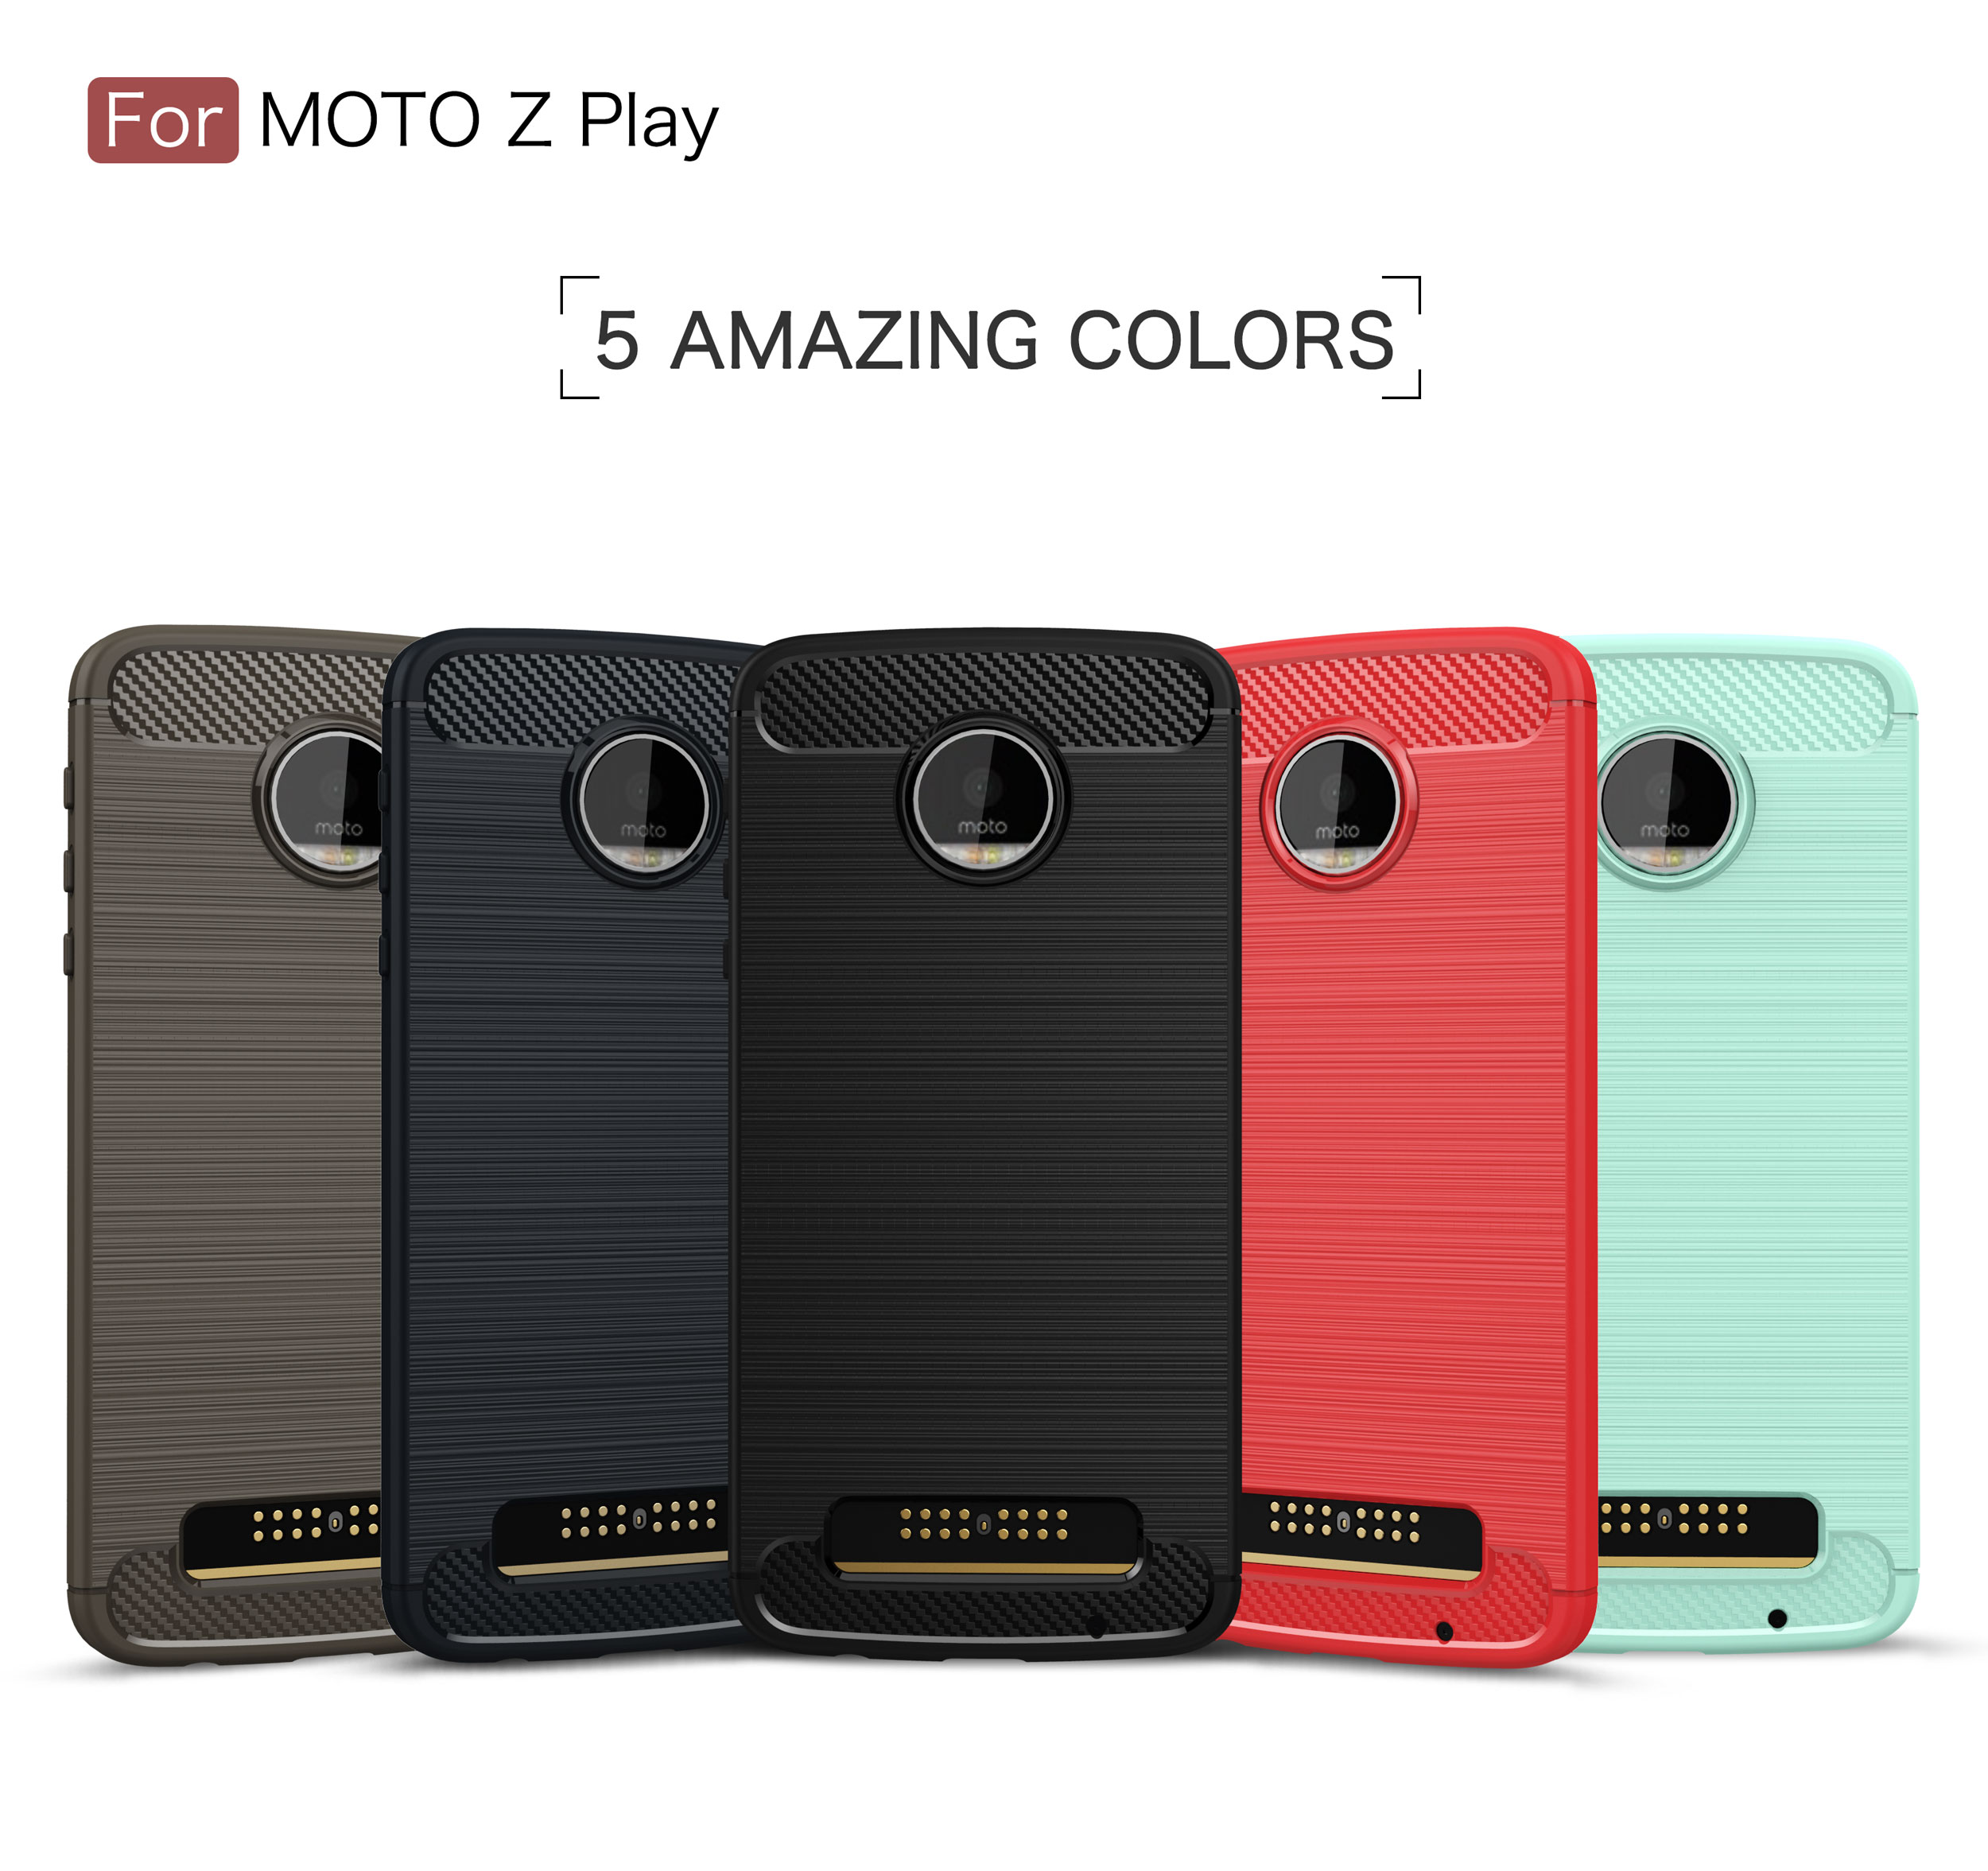 For Capa Motorola <font><b>Moto</b></font> <font><b>Z</b></font> <font><b>play</b></font> Case <font><b>Moto</b></font> <font><b>Z</b></font> <font><b>play</b></font> Coque <font><b>XT1635</b></font>-01 <font><b>XT1635</b></font>-<font><b>02</b></font> <font><b>XT1635</b></font>-03 Silicone Case for 5.5